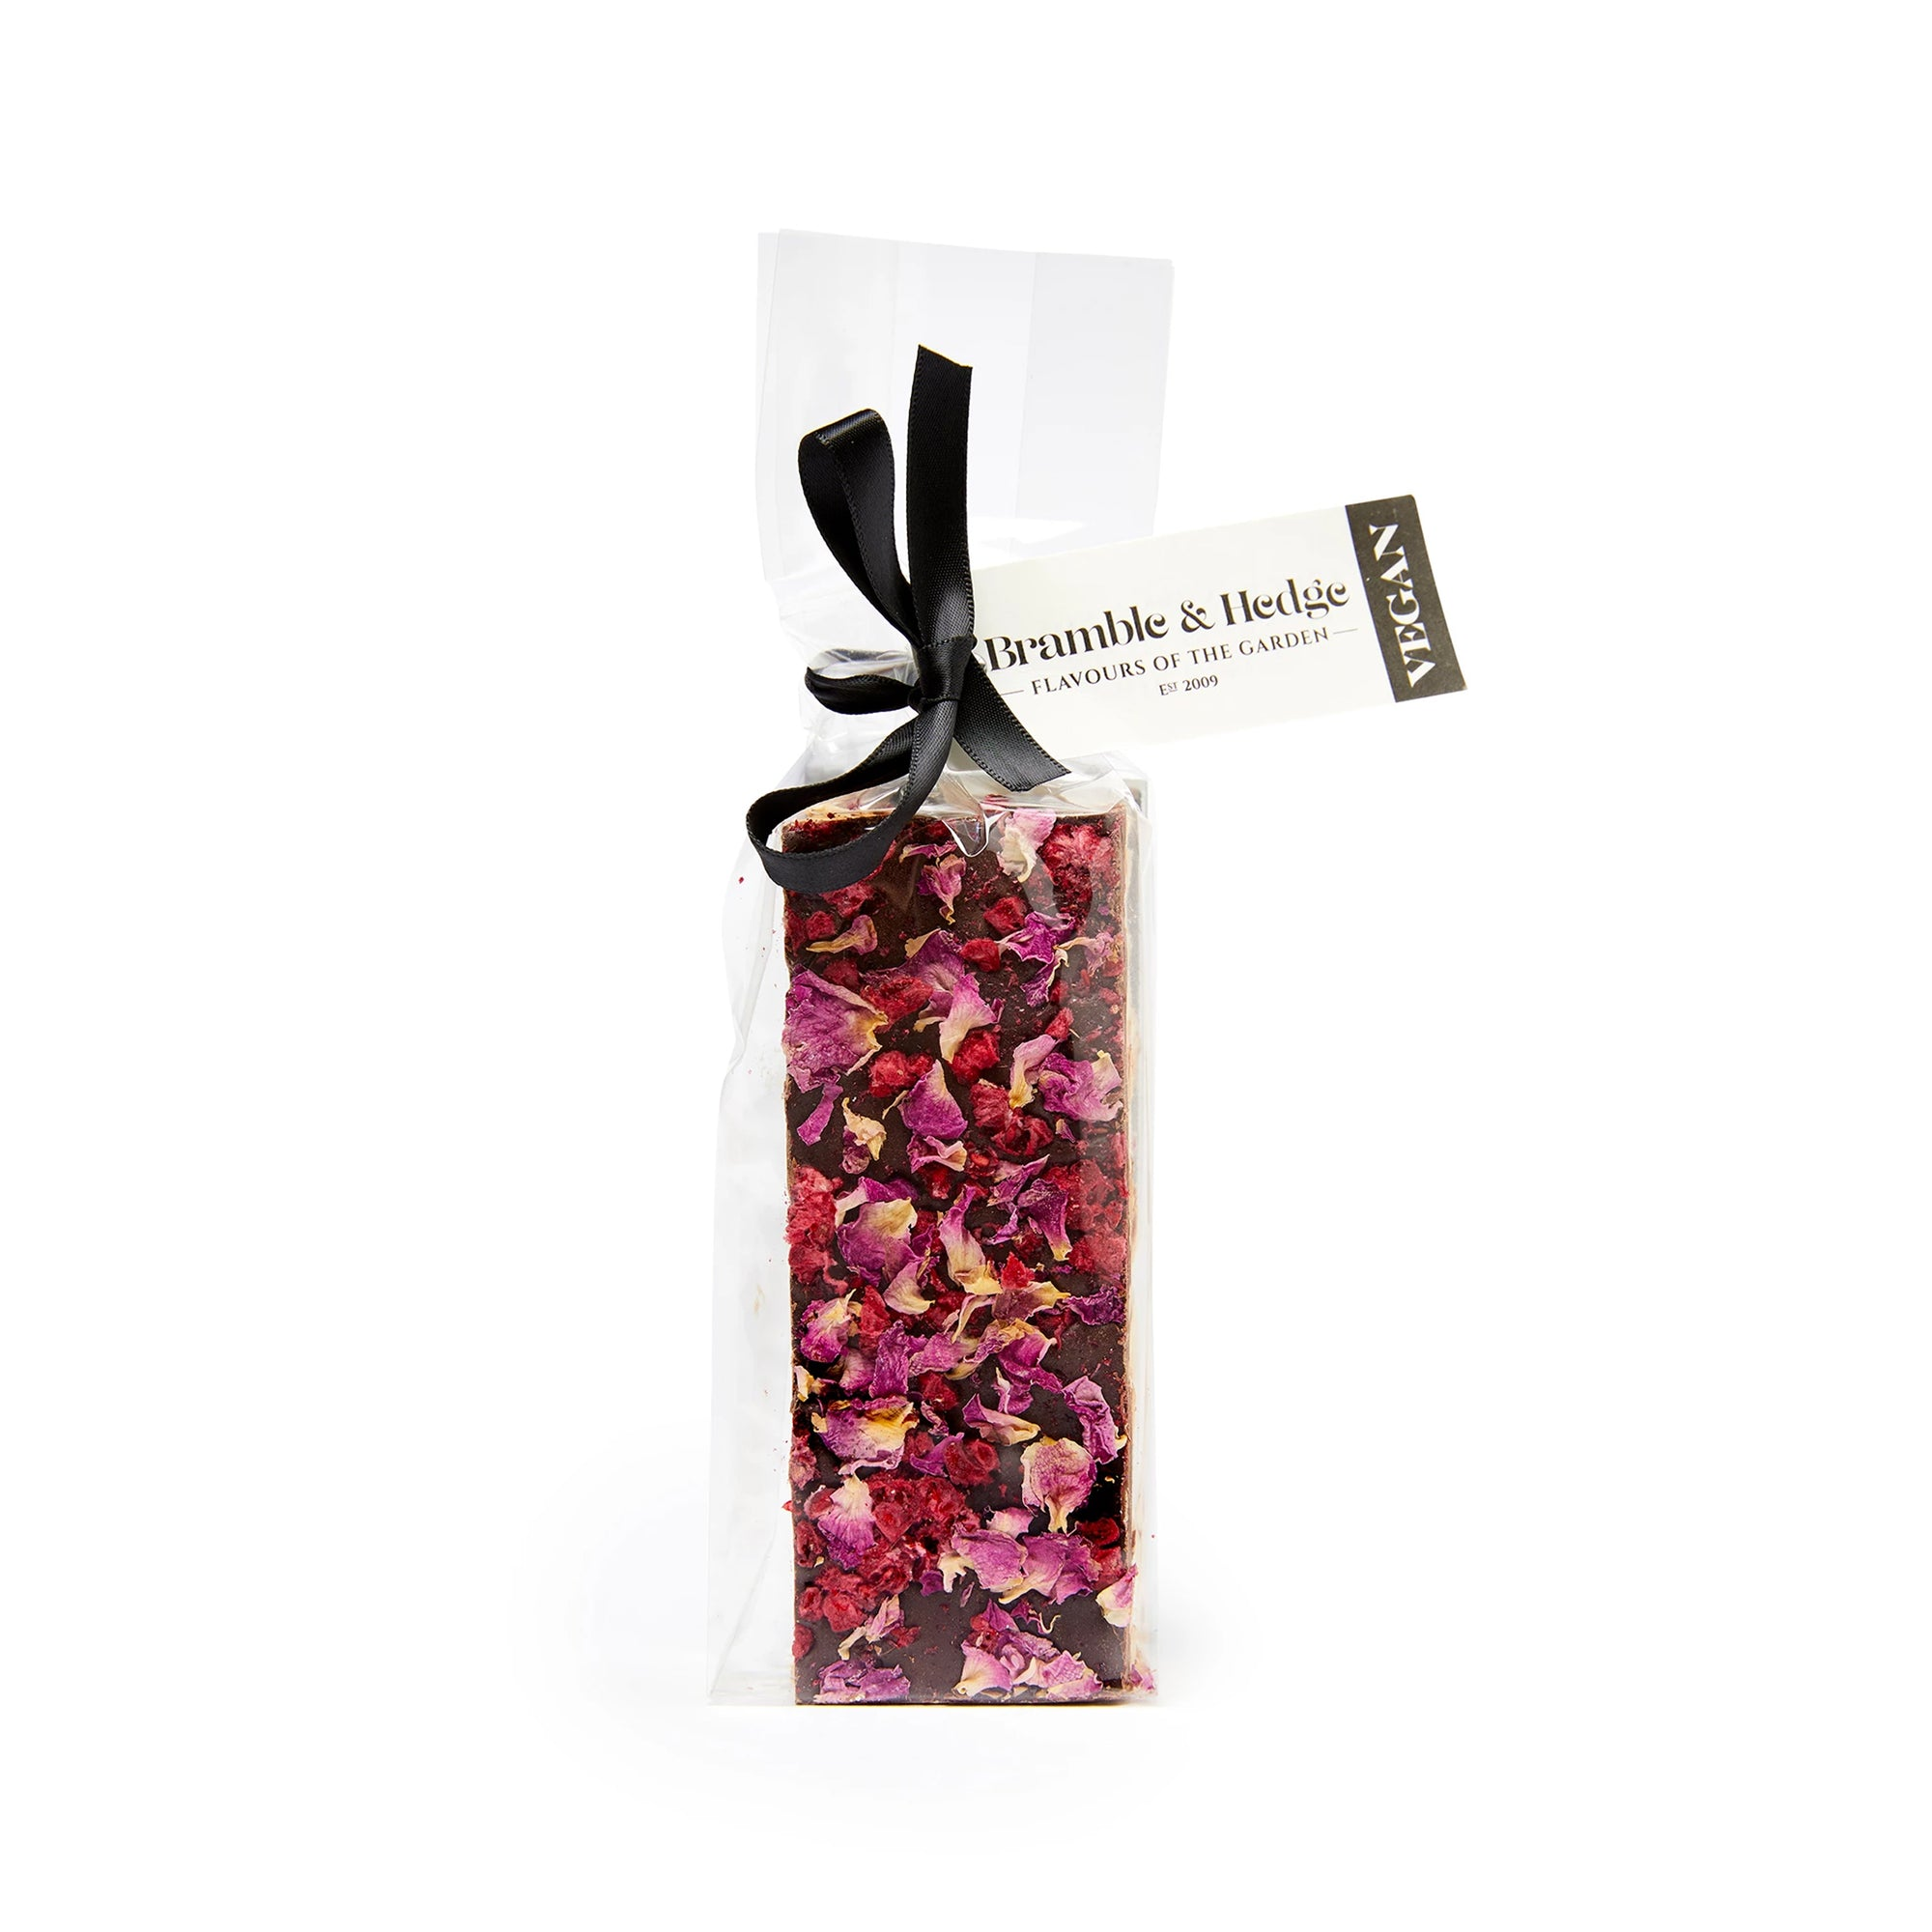 Bramble & Hedge - Vegan Nougat - Wild Raspberry & Vanilla Bean  150g